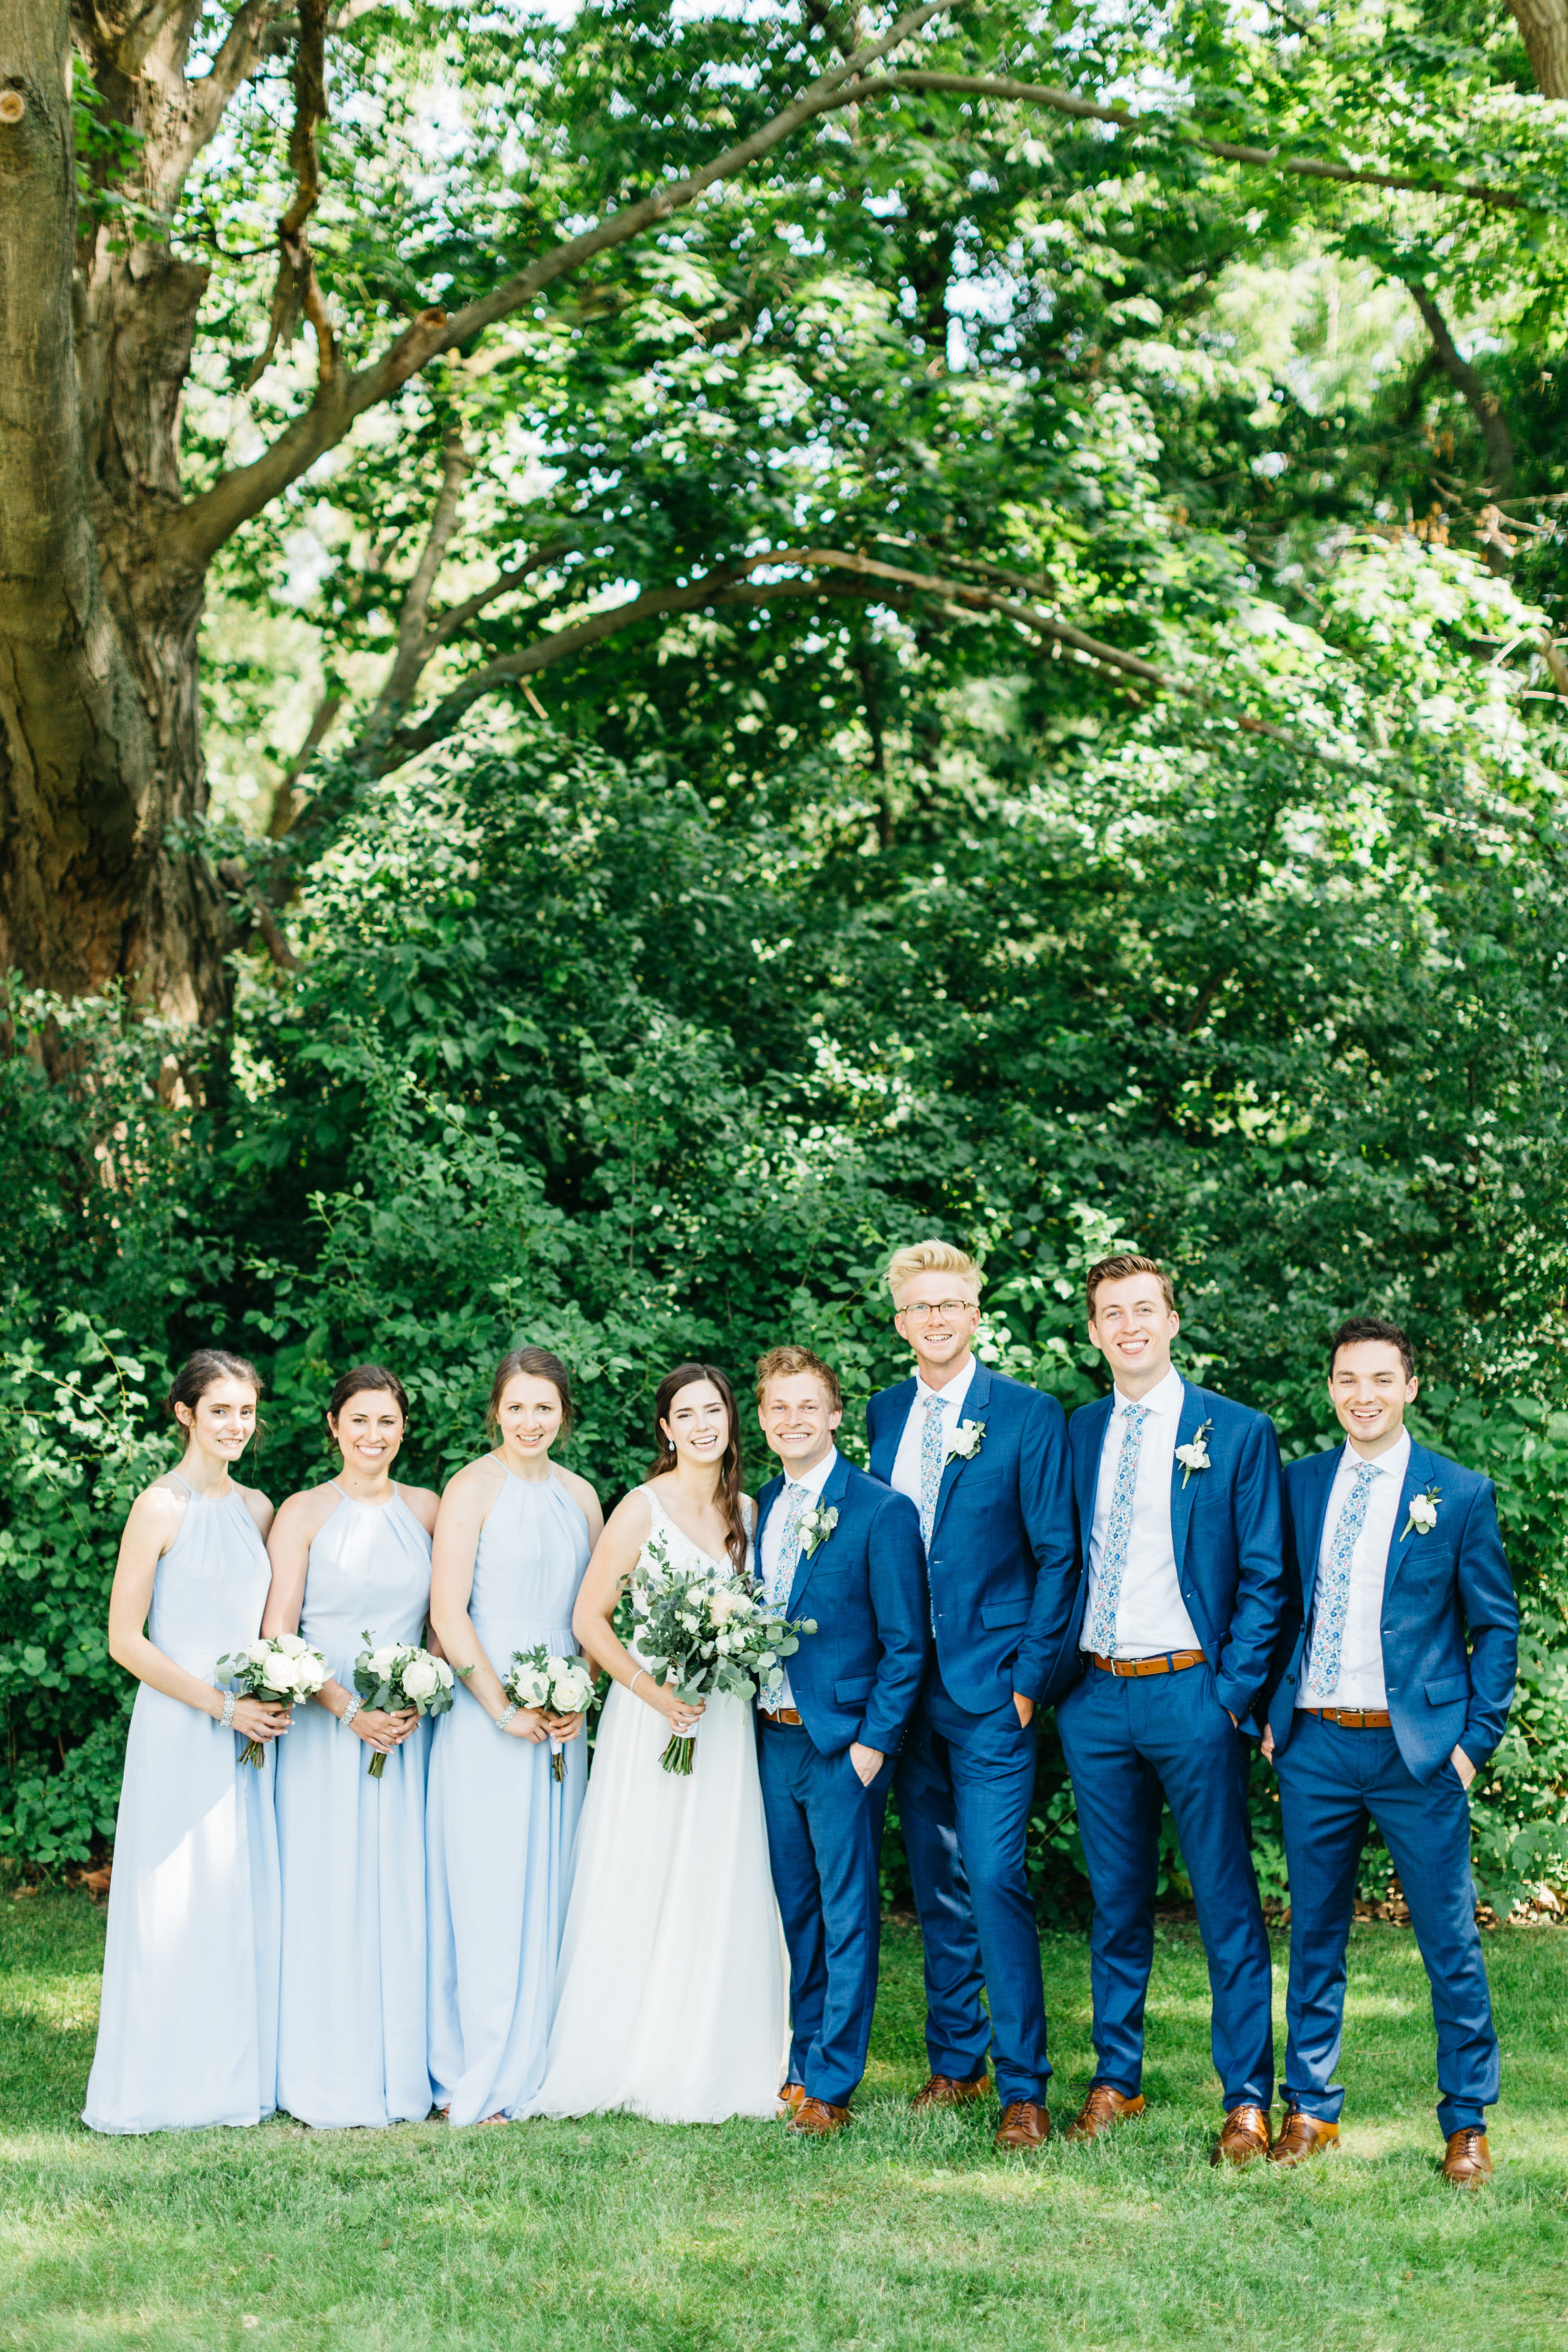 Bridal party photo at Harding Waterfront Estate